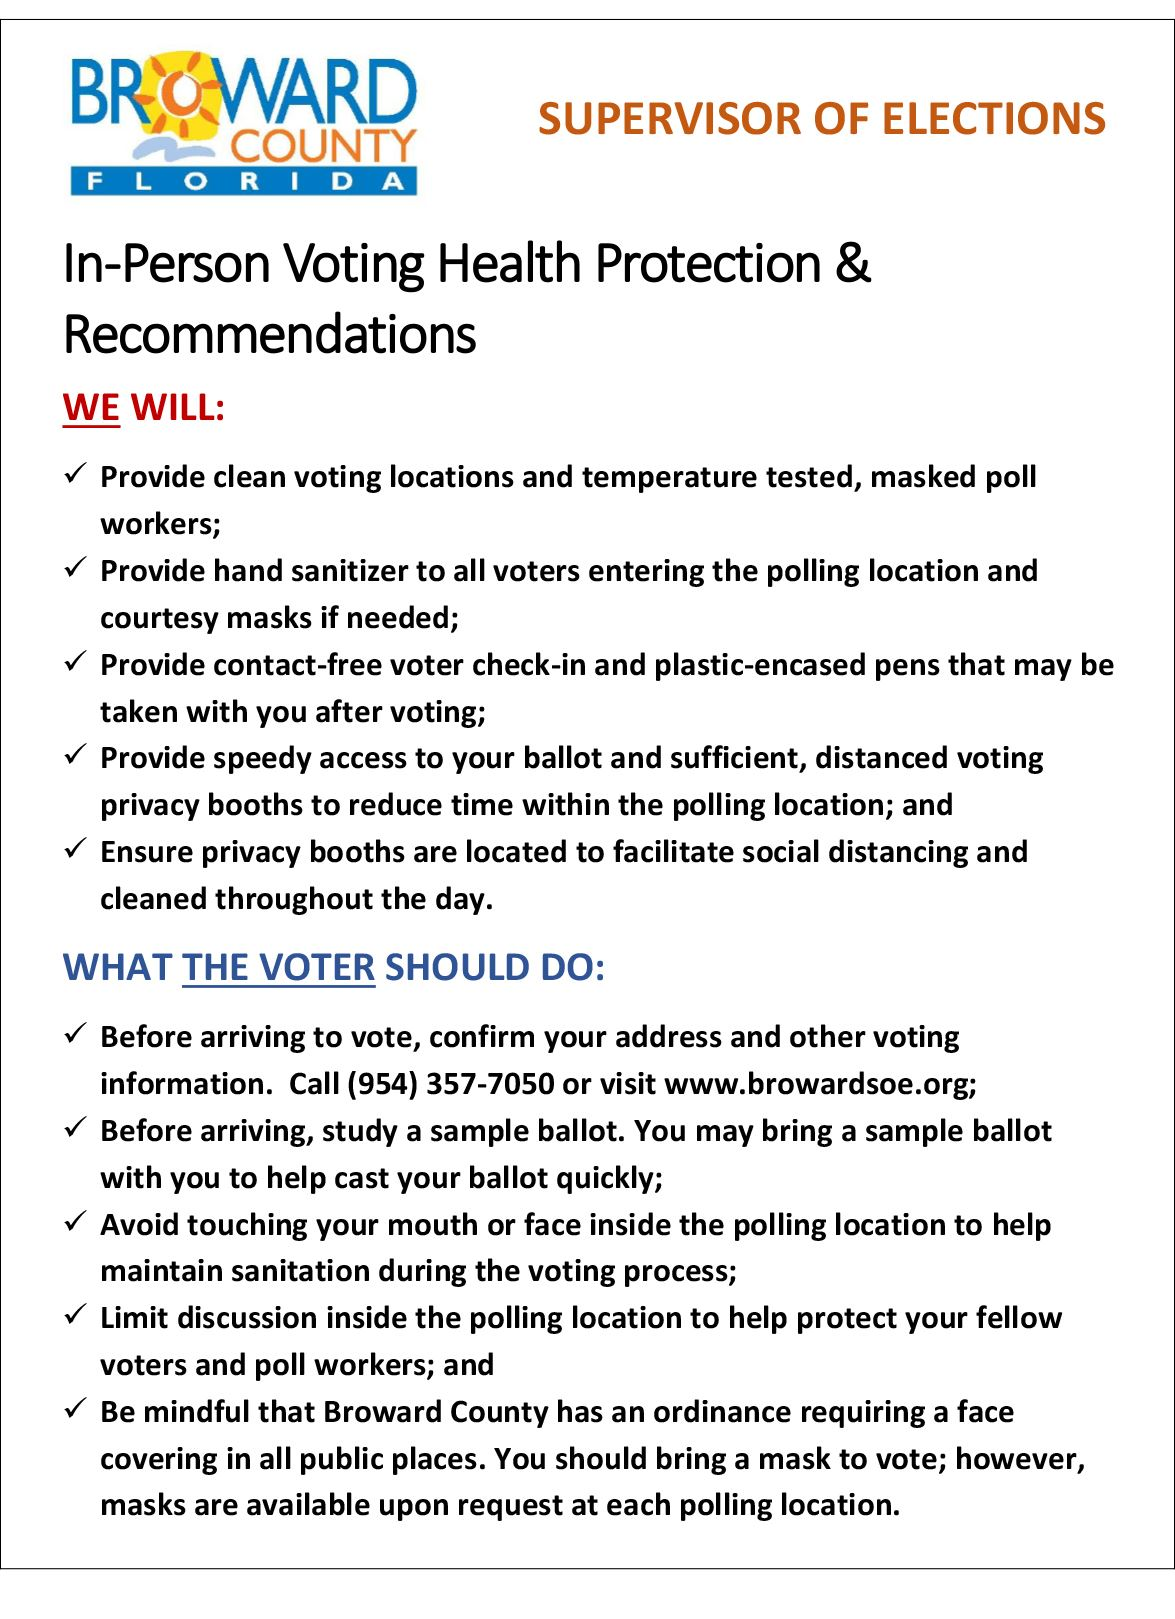 In-Person Voting Health Protection and Recommendations_